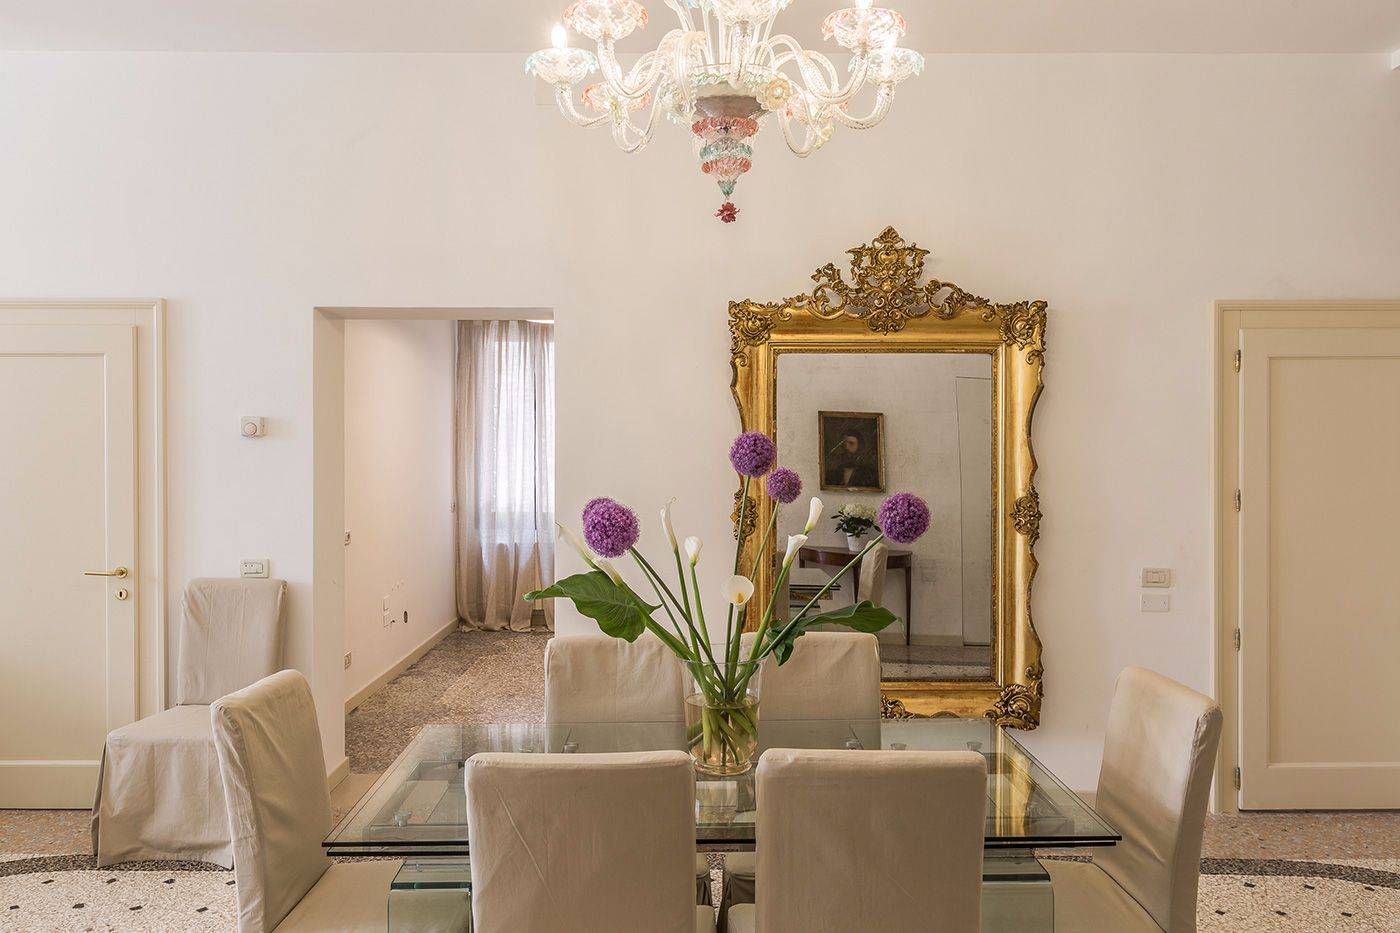 the authentic Venetian architecture blends perfectly with the moderm cleanliness of the interiors